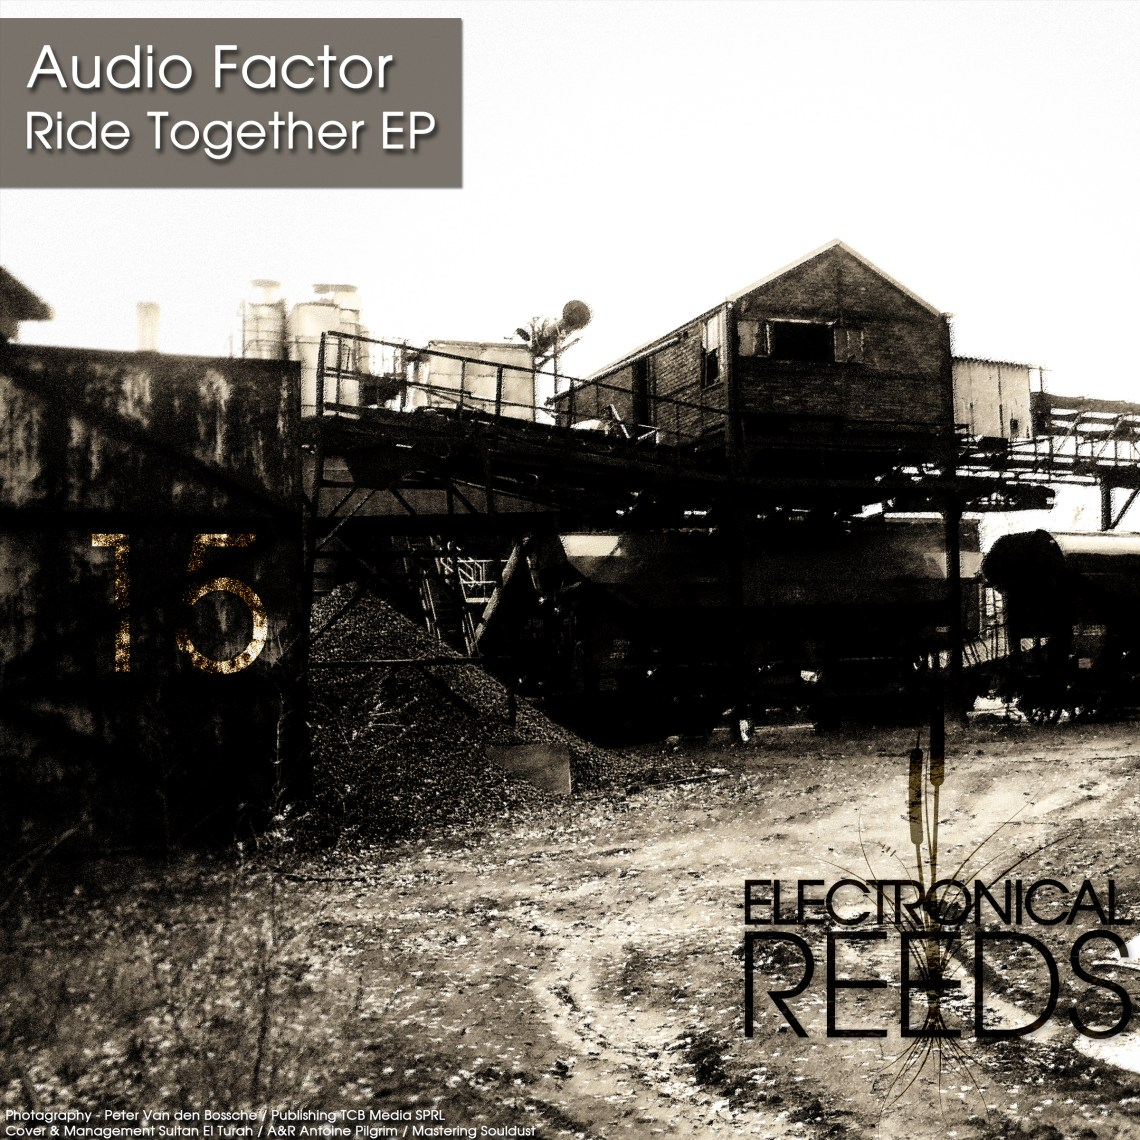 ER015 - Audio Factor - Ride Together EP - Electronical Reeds